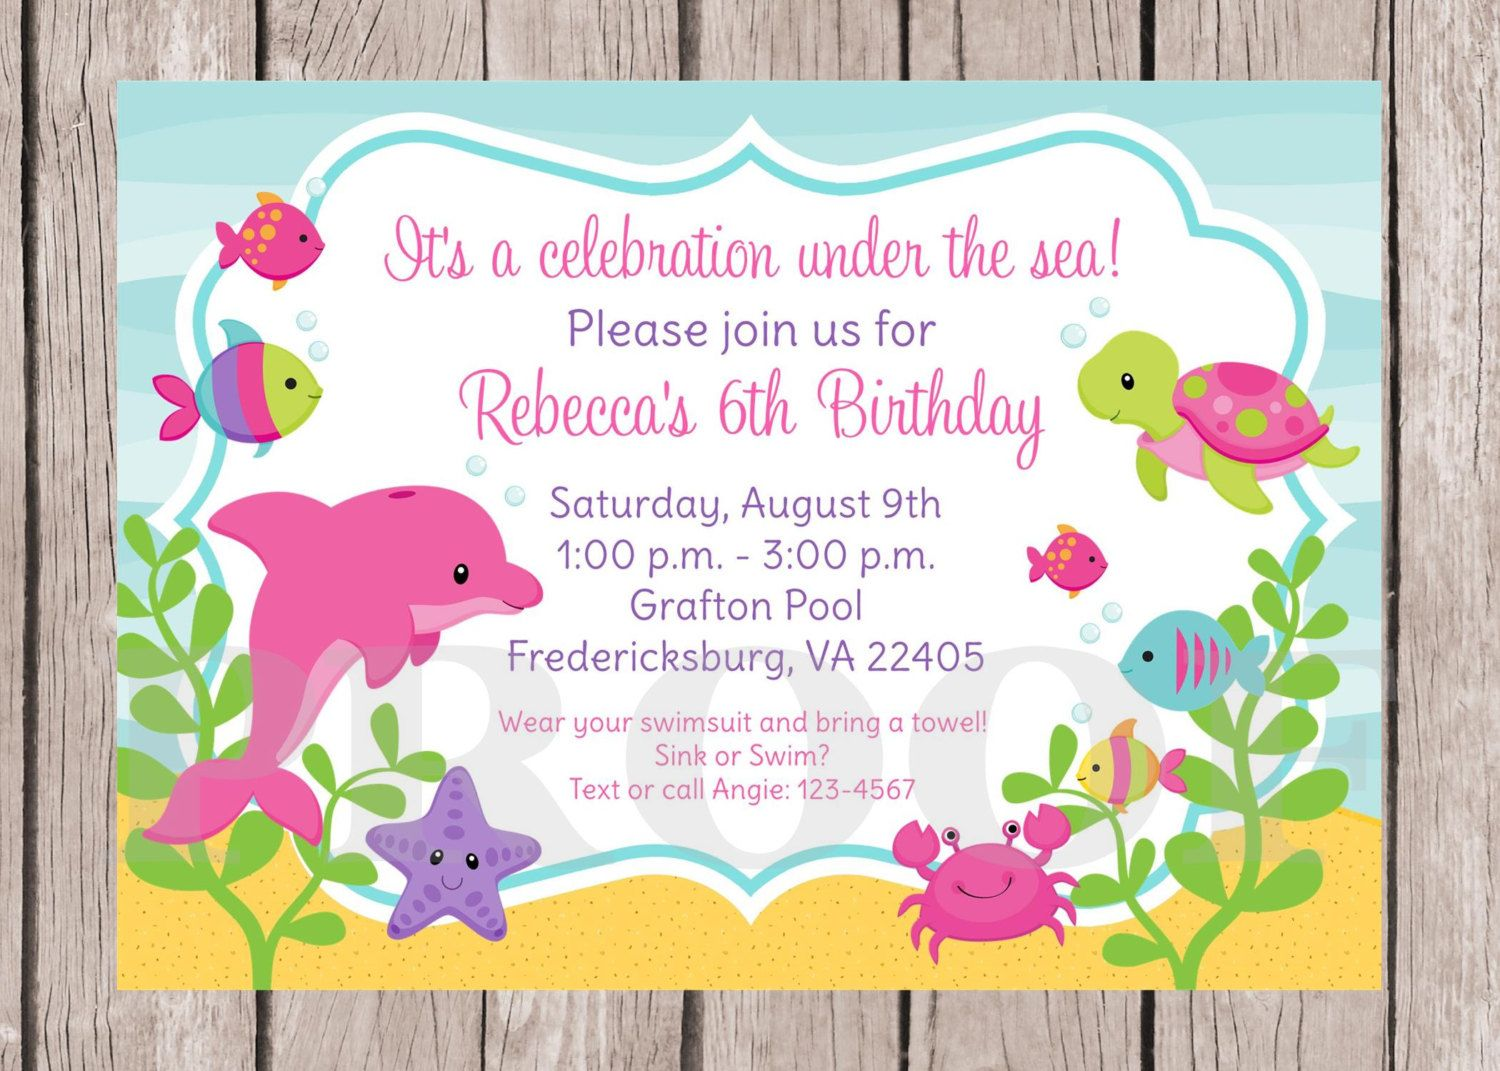 Printable under the sea birthday party invitation by ciaobambino printable under the sea birthday party invitation by ciaobambino filmwisefo Gallery